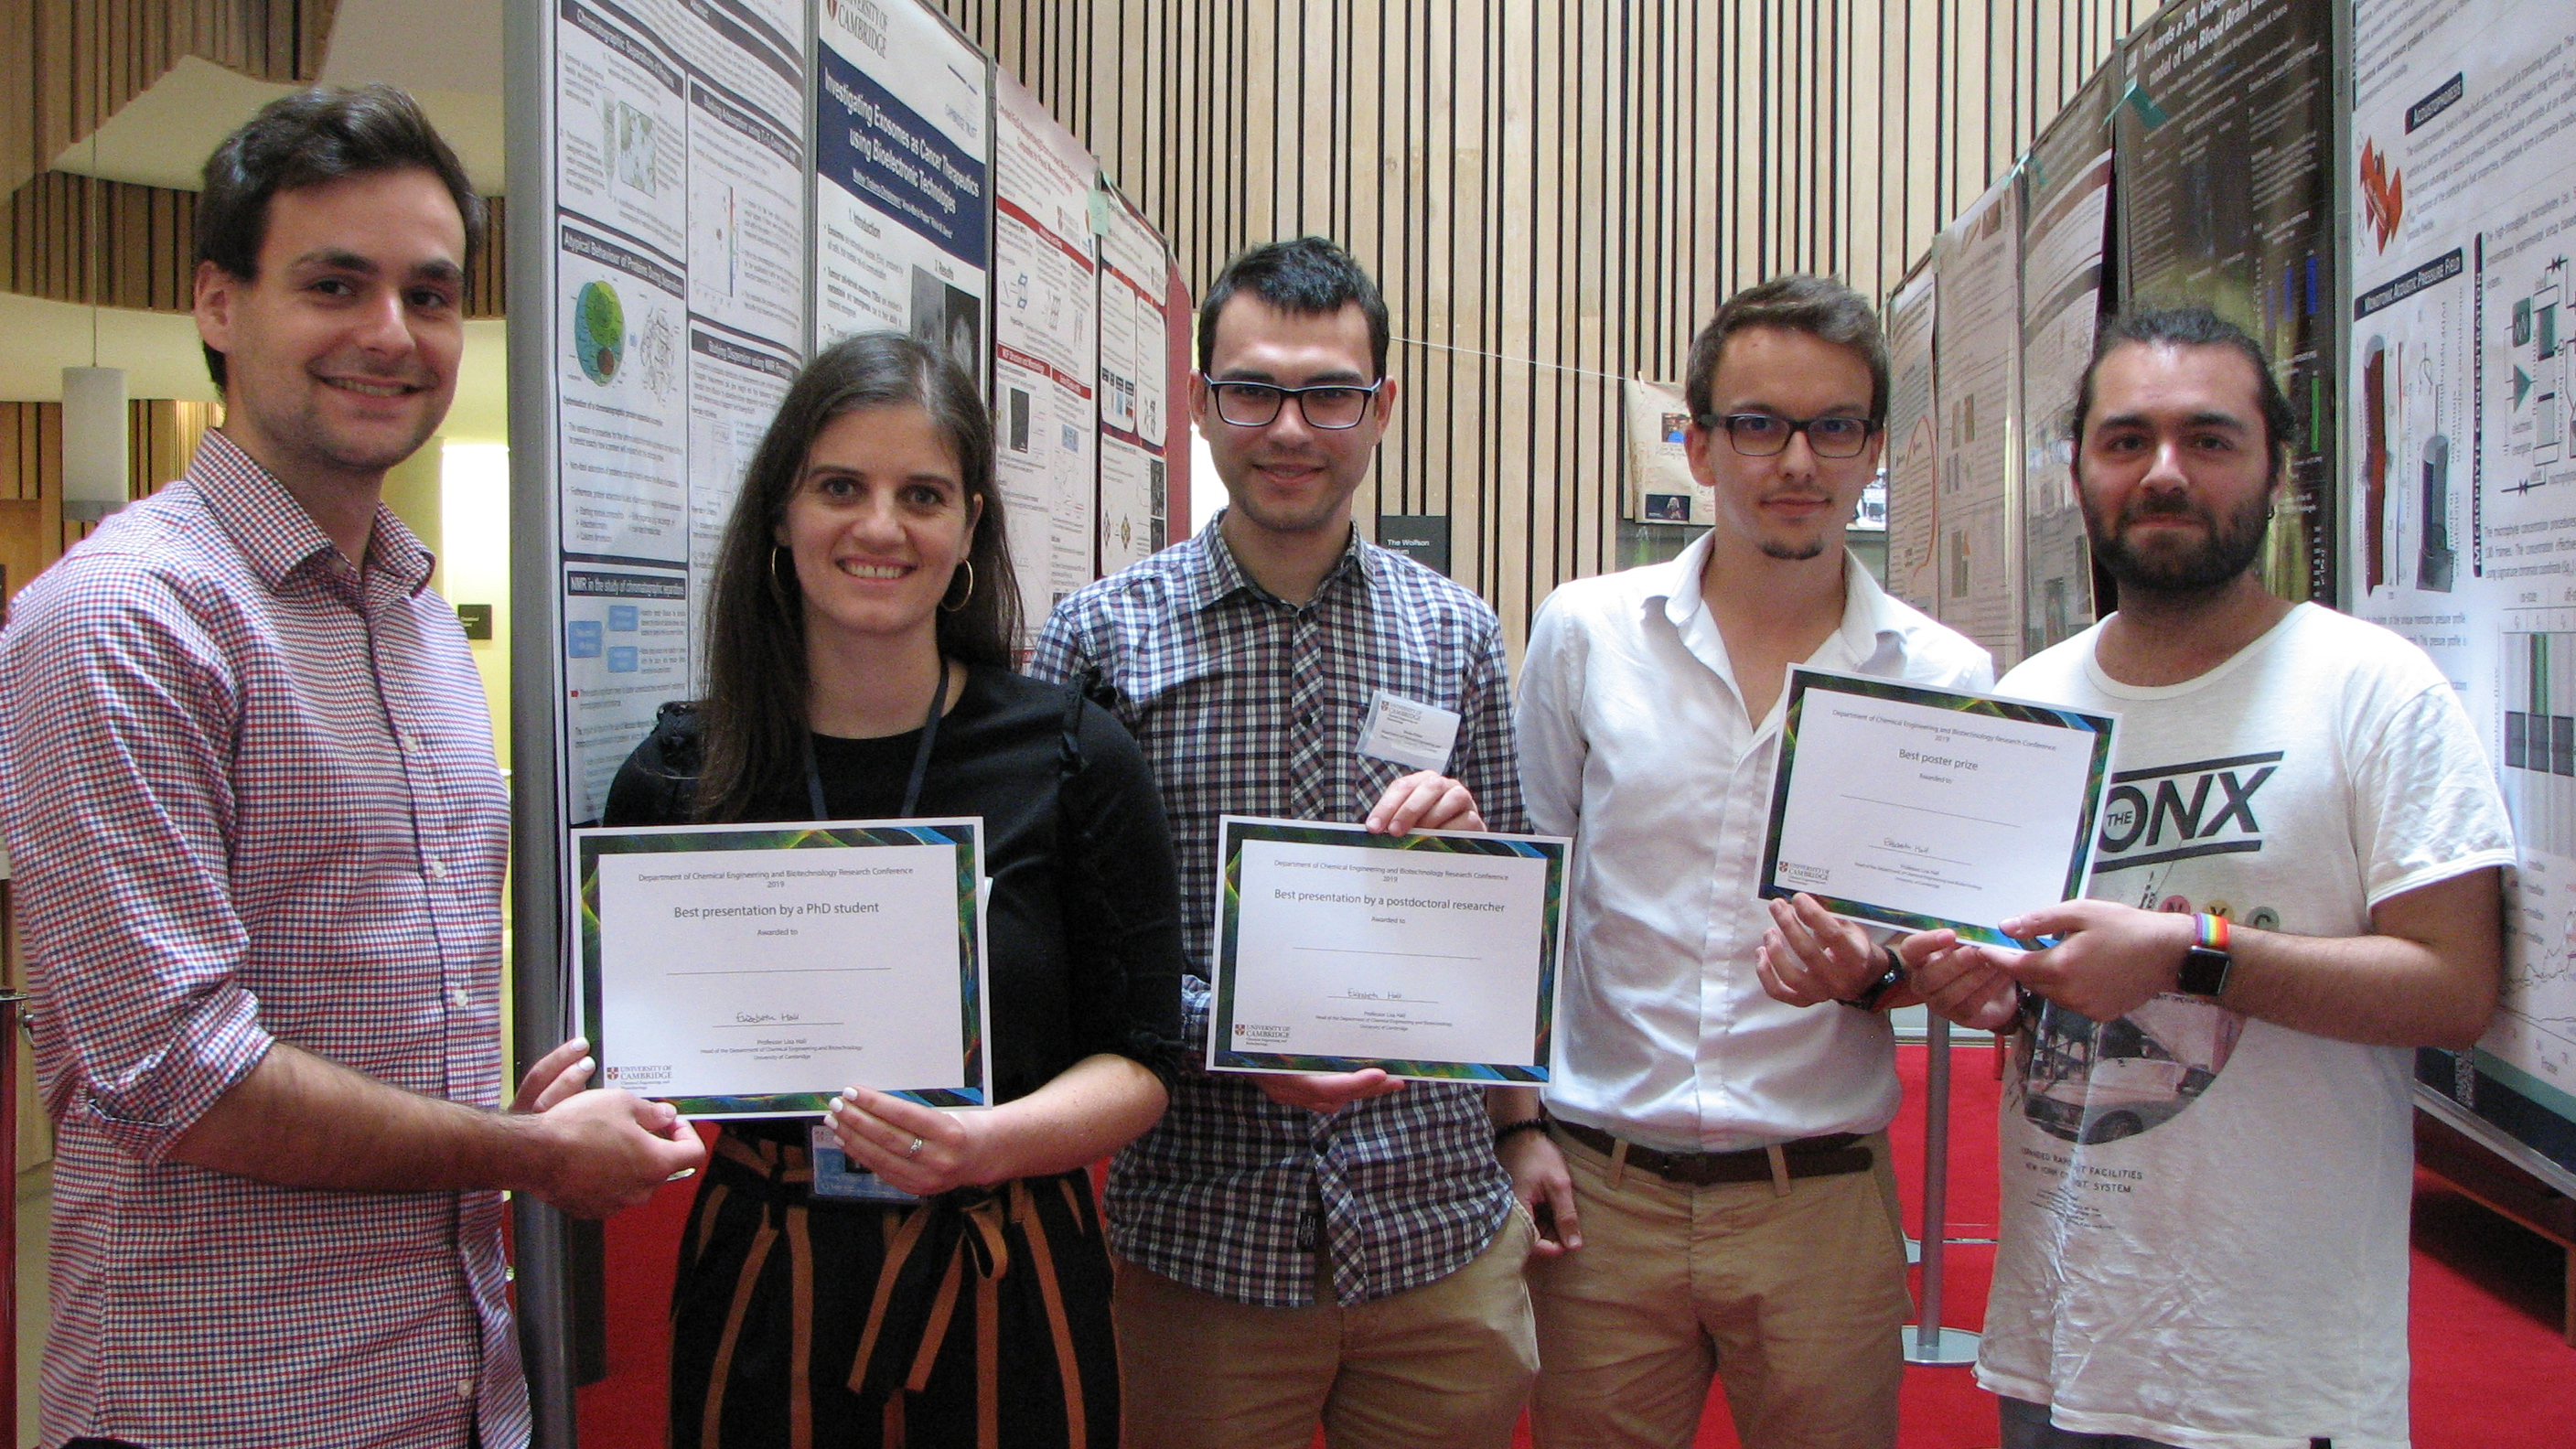 Prize winners from our research conference